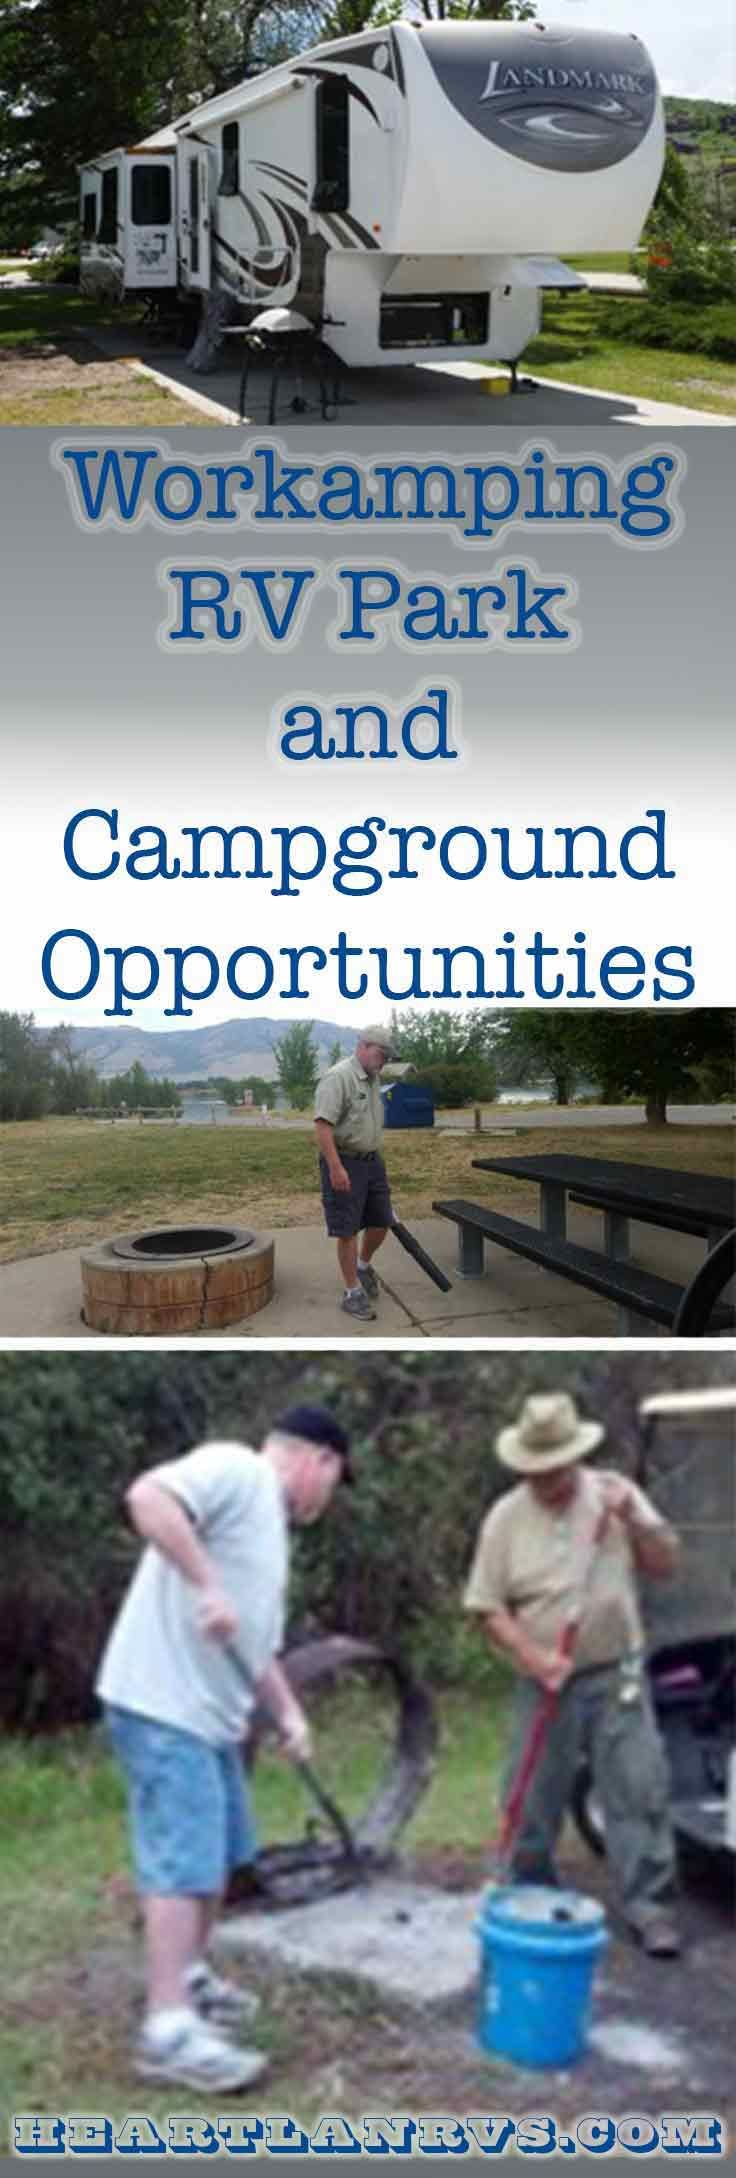 Blog workamping rv parks and campgrounds rv parks